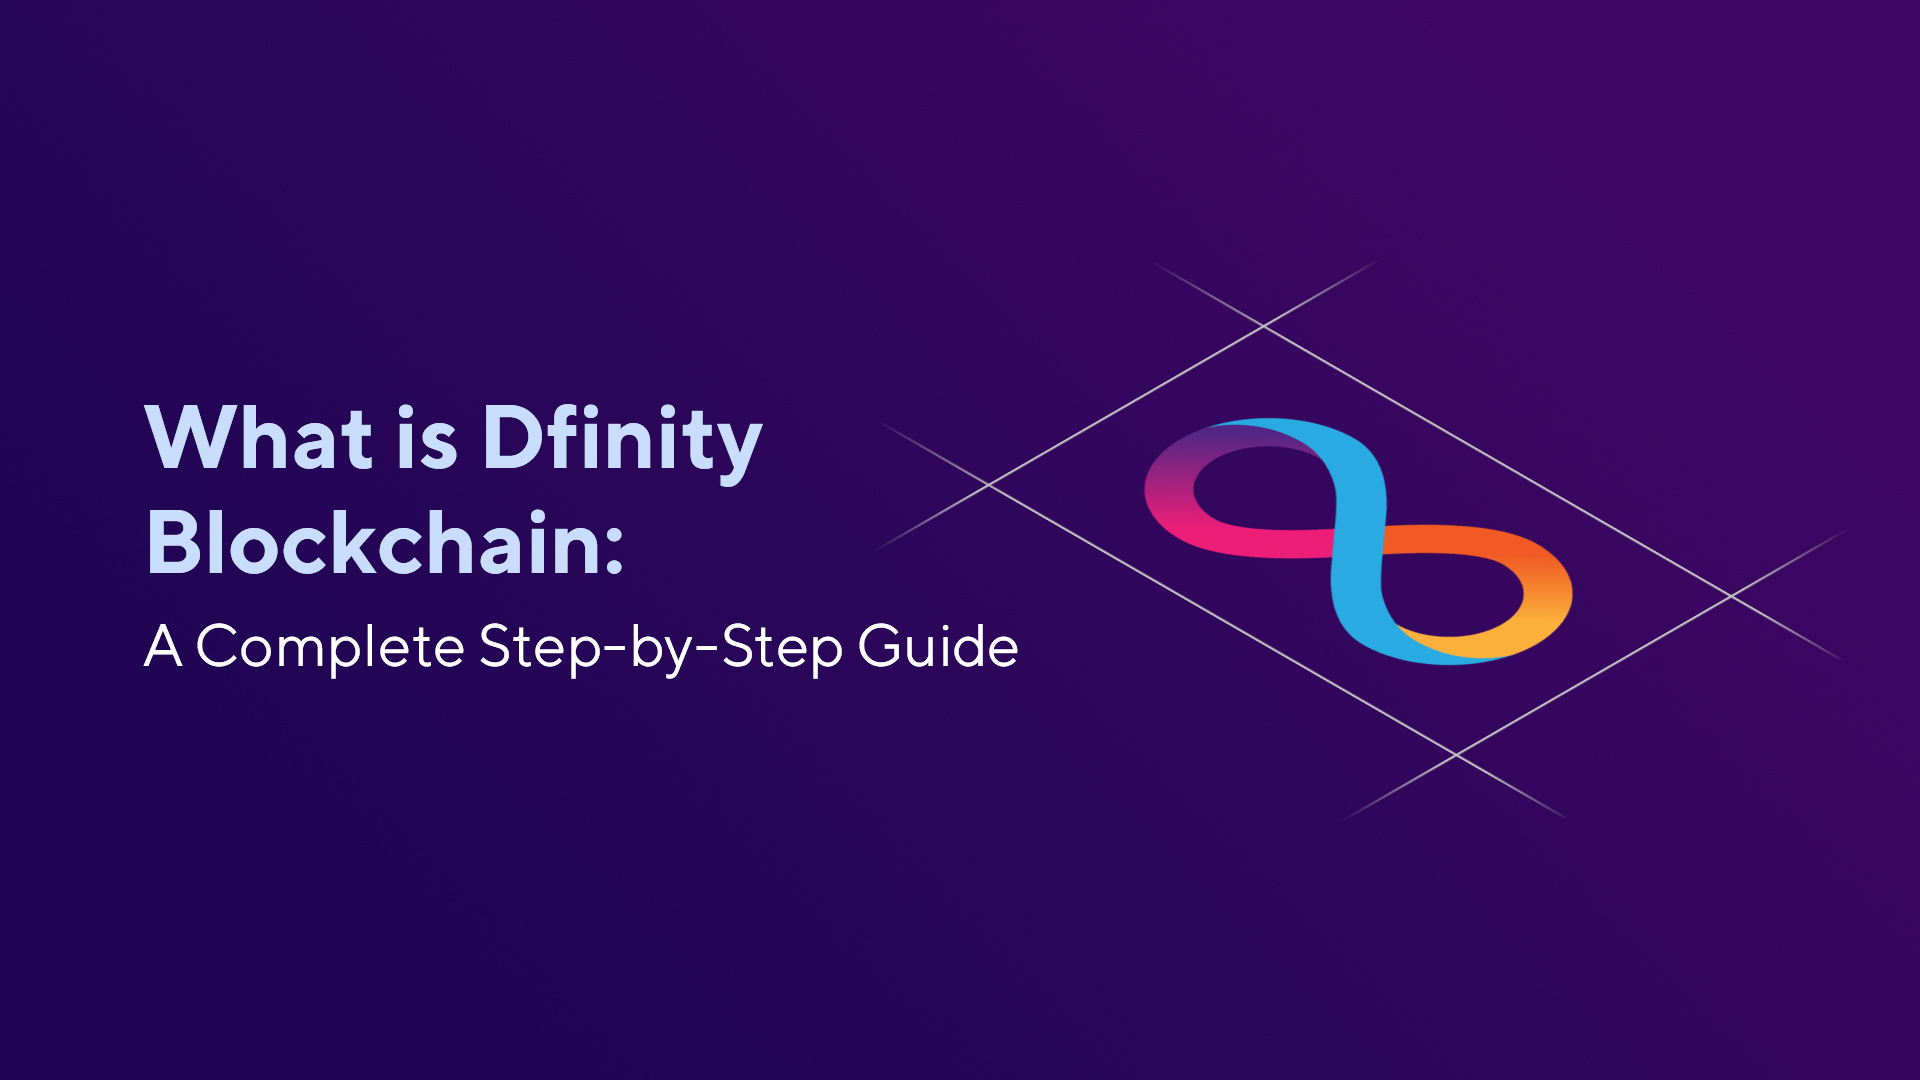 What is Dfinity Blockchain: A Complete Step-by-Step Guide